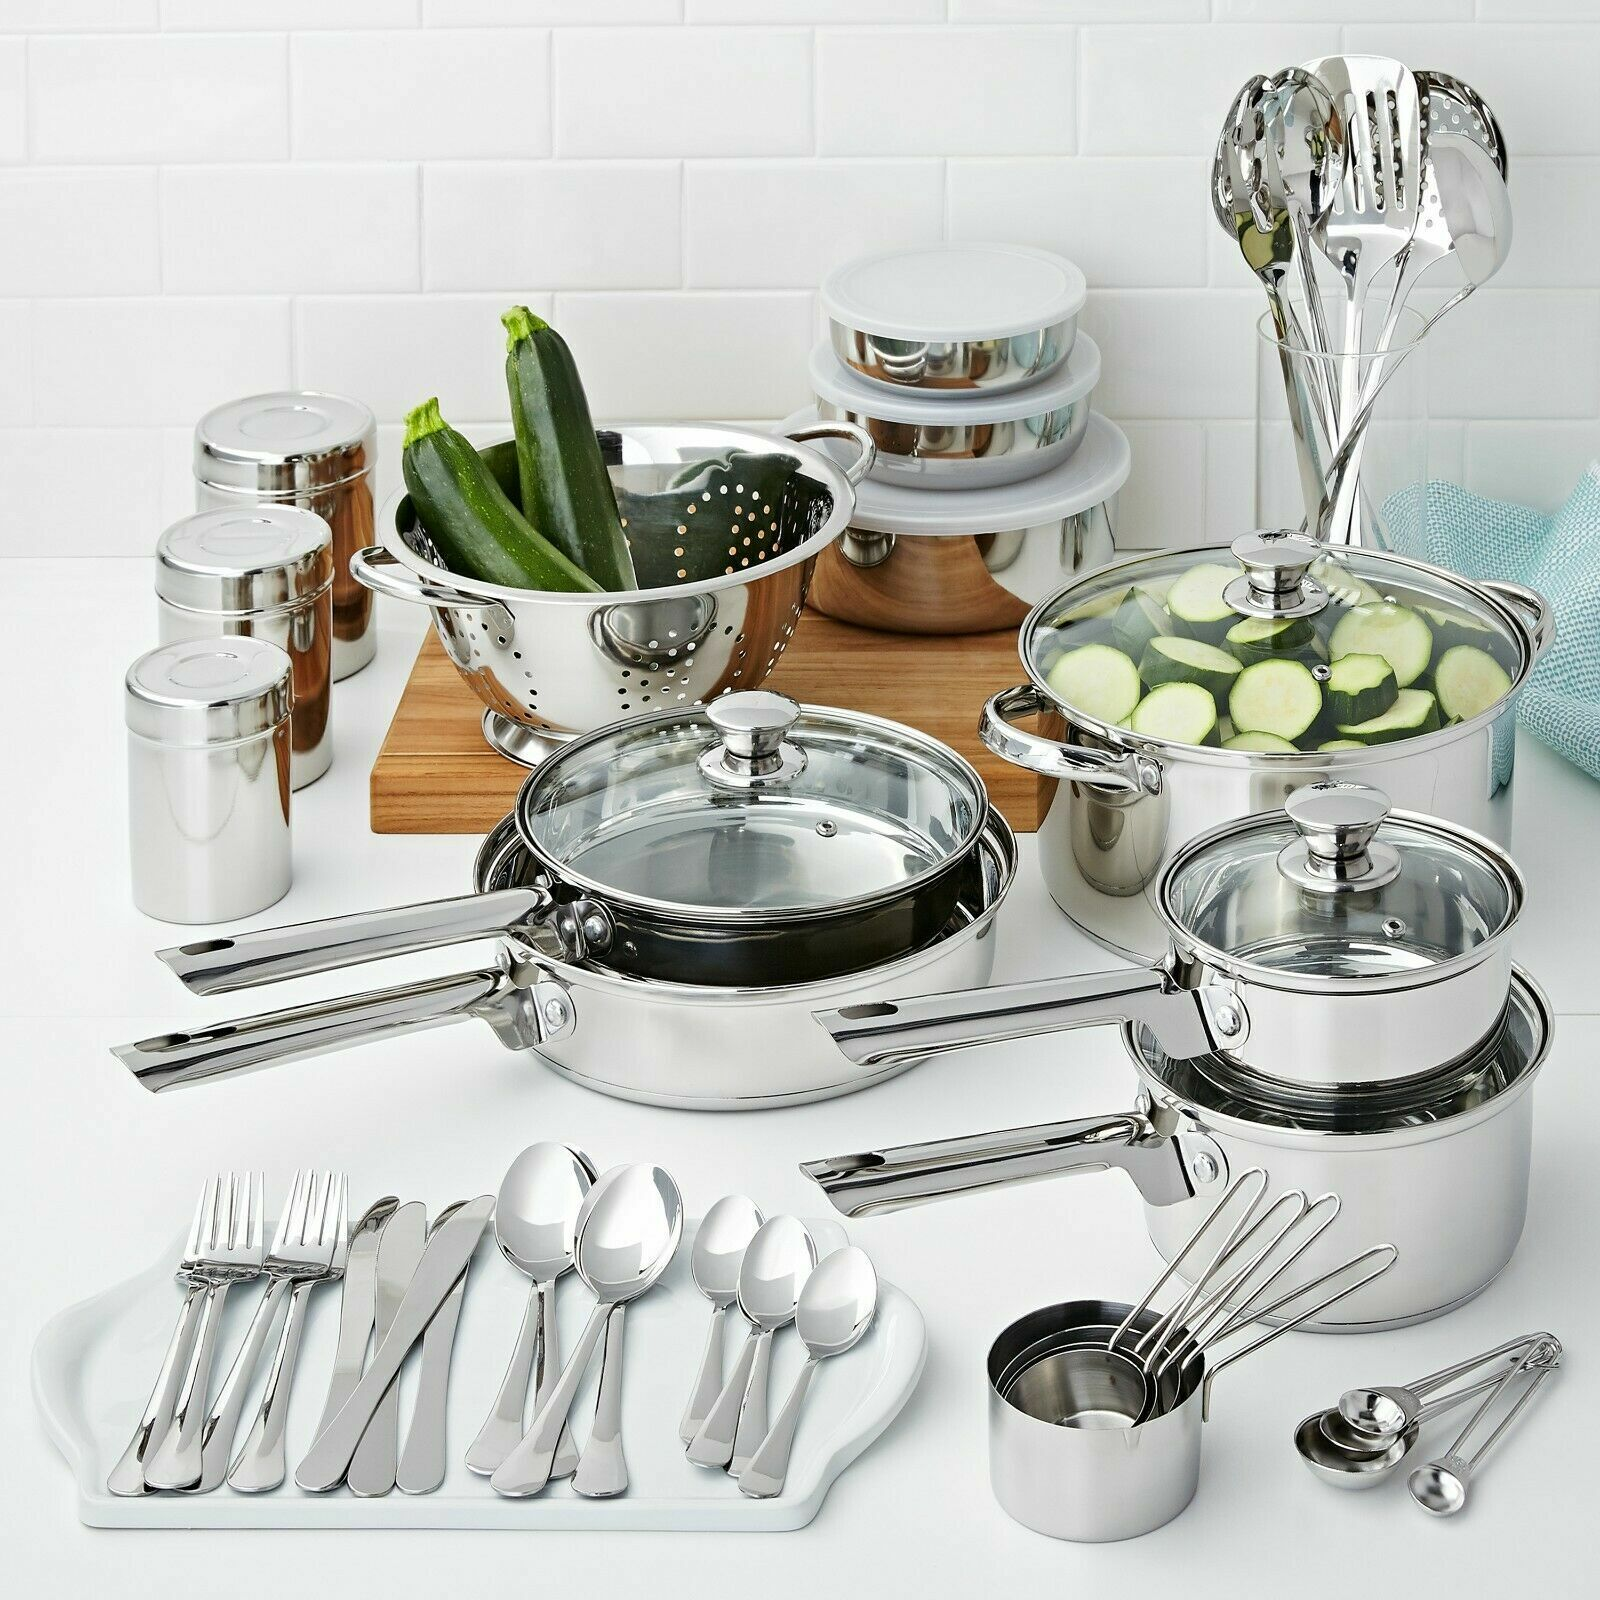 Non Stick Cookware Sets Stainless Steel 10 18 52 Piece Base Pieces Pots and Pans